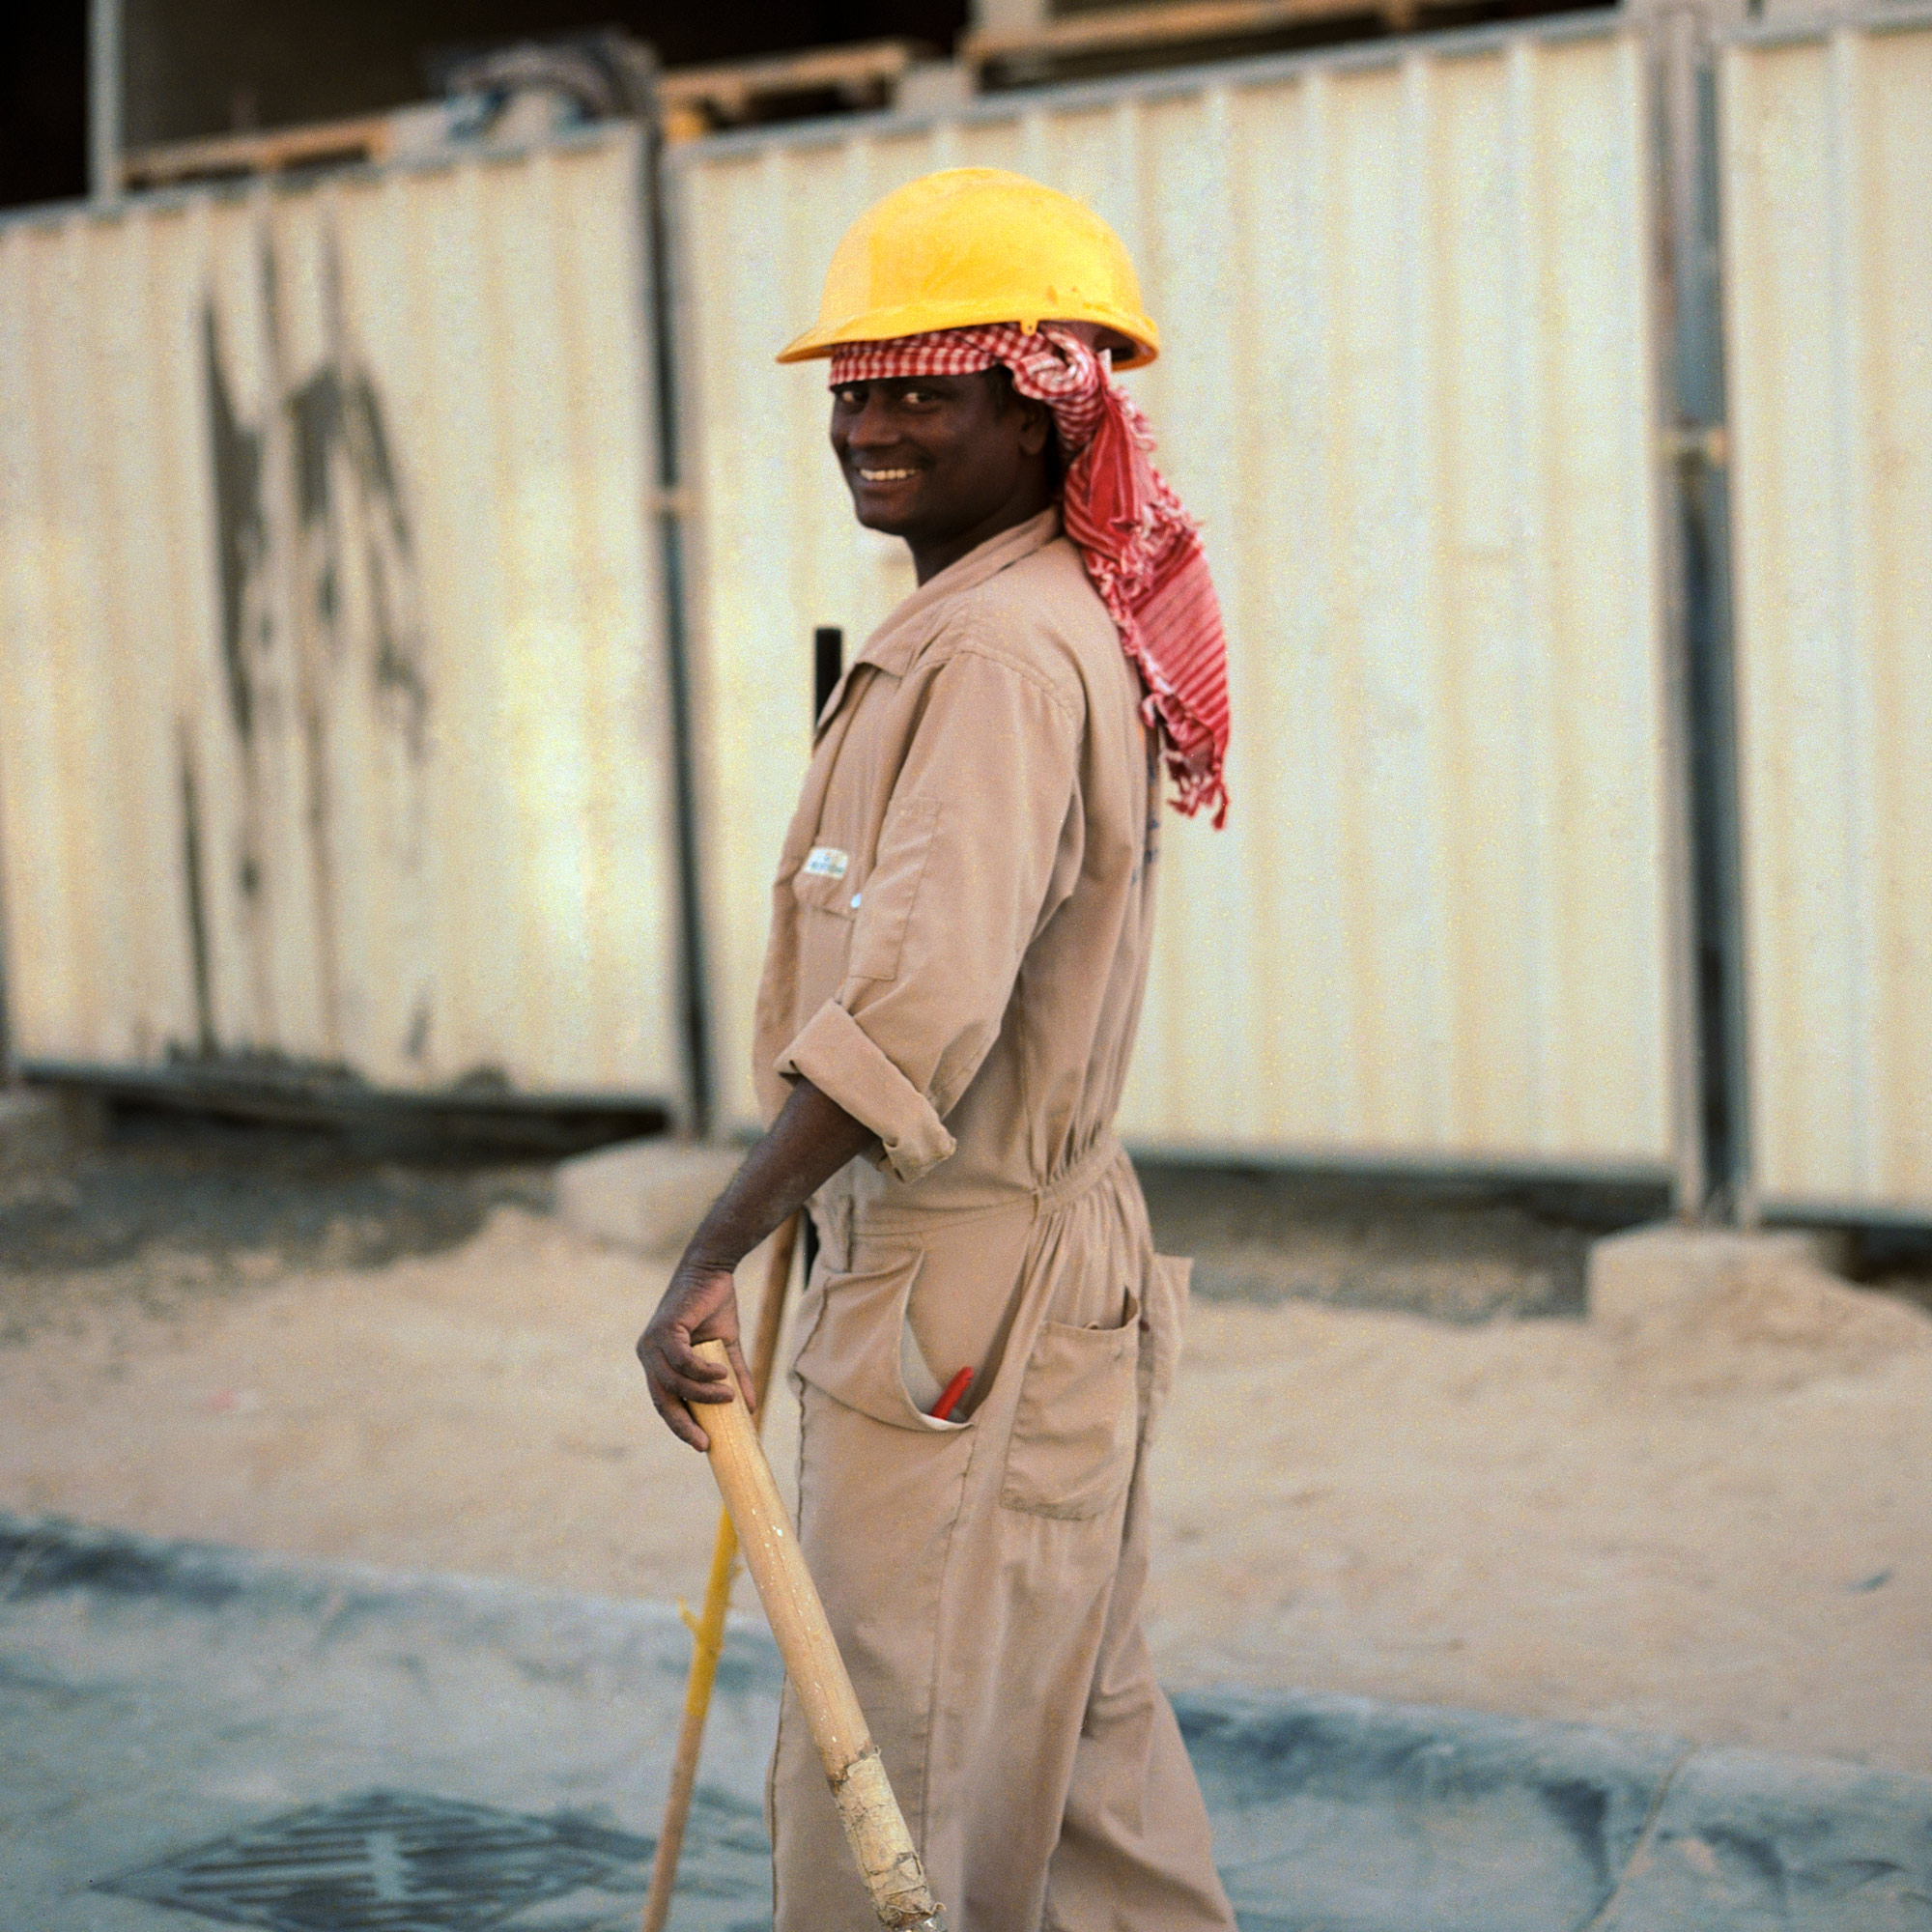 Indian construction worker on worksite. Dubai Labourers.